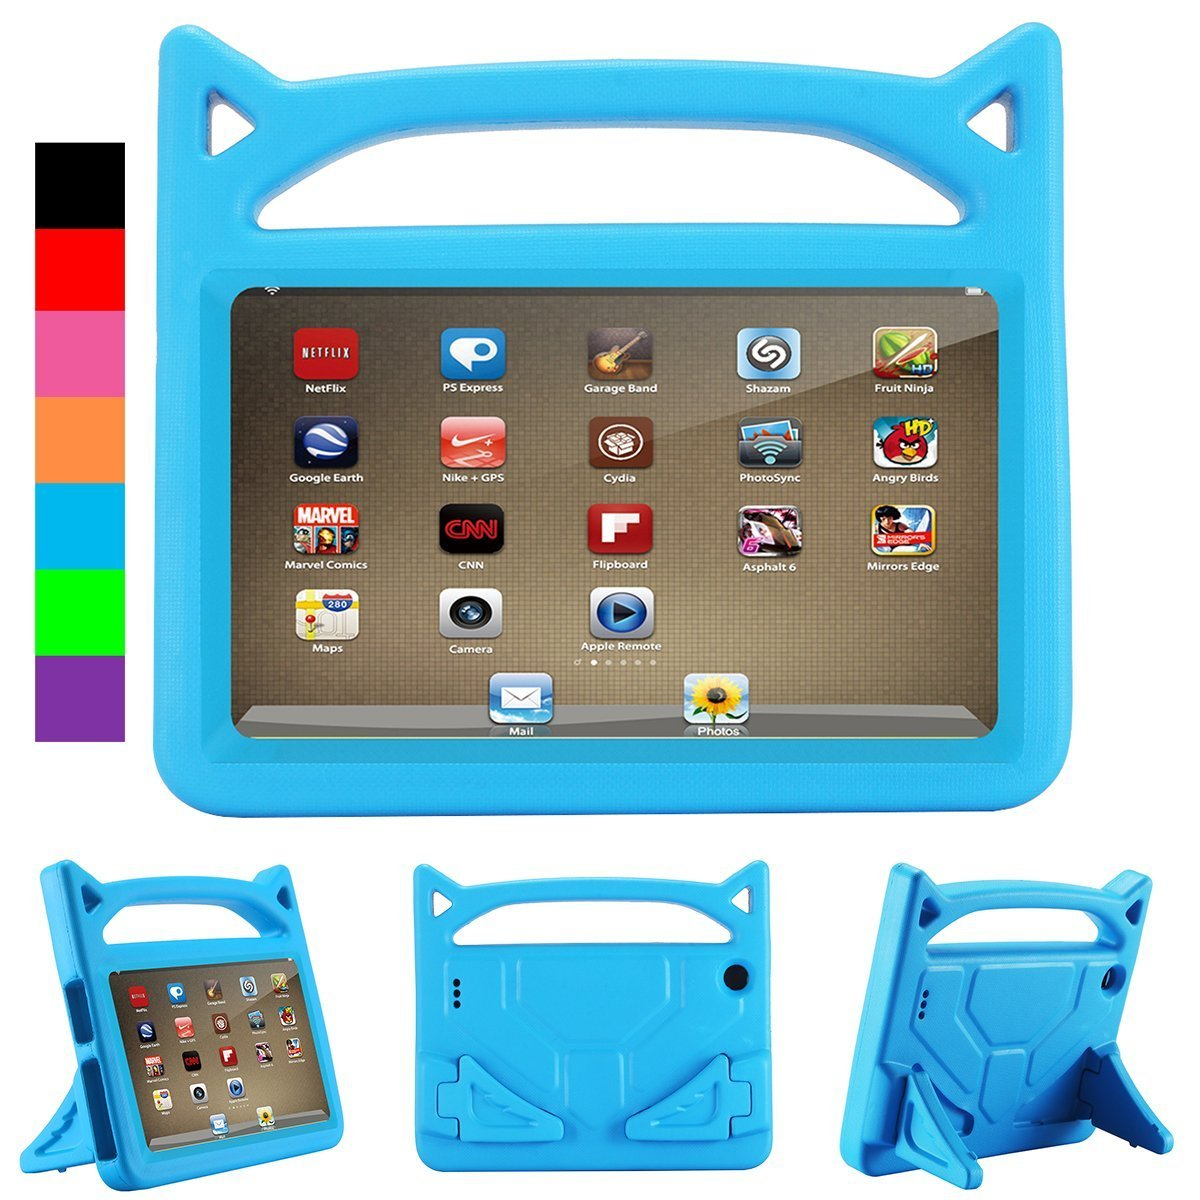 F i r e 7 Tablet Case, Mr. Spades - Light Weight Shock Proof Handle Kid –Proof Cover Kids Case for A m a z o n F i r e 7 Tablet (5th Generation, 2015 Release and 7th Generation, 2017 Release)